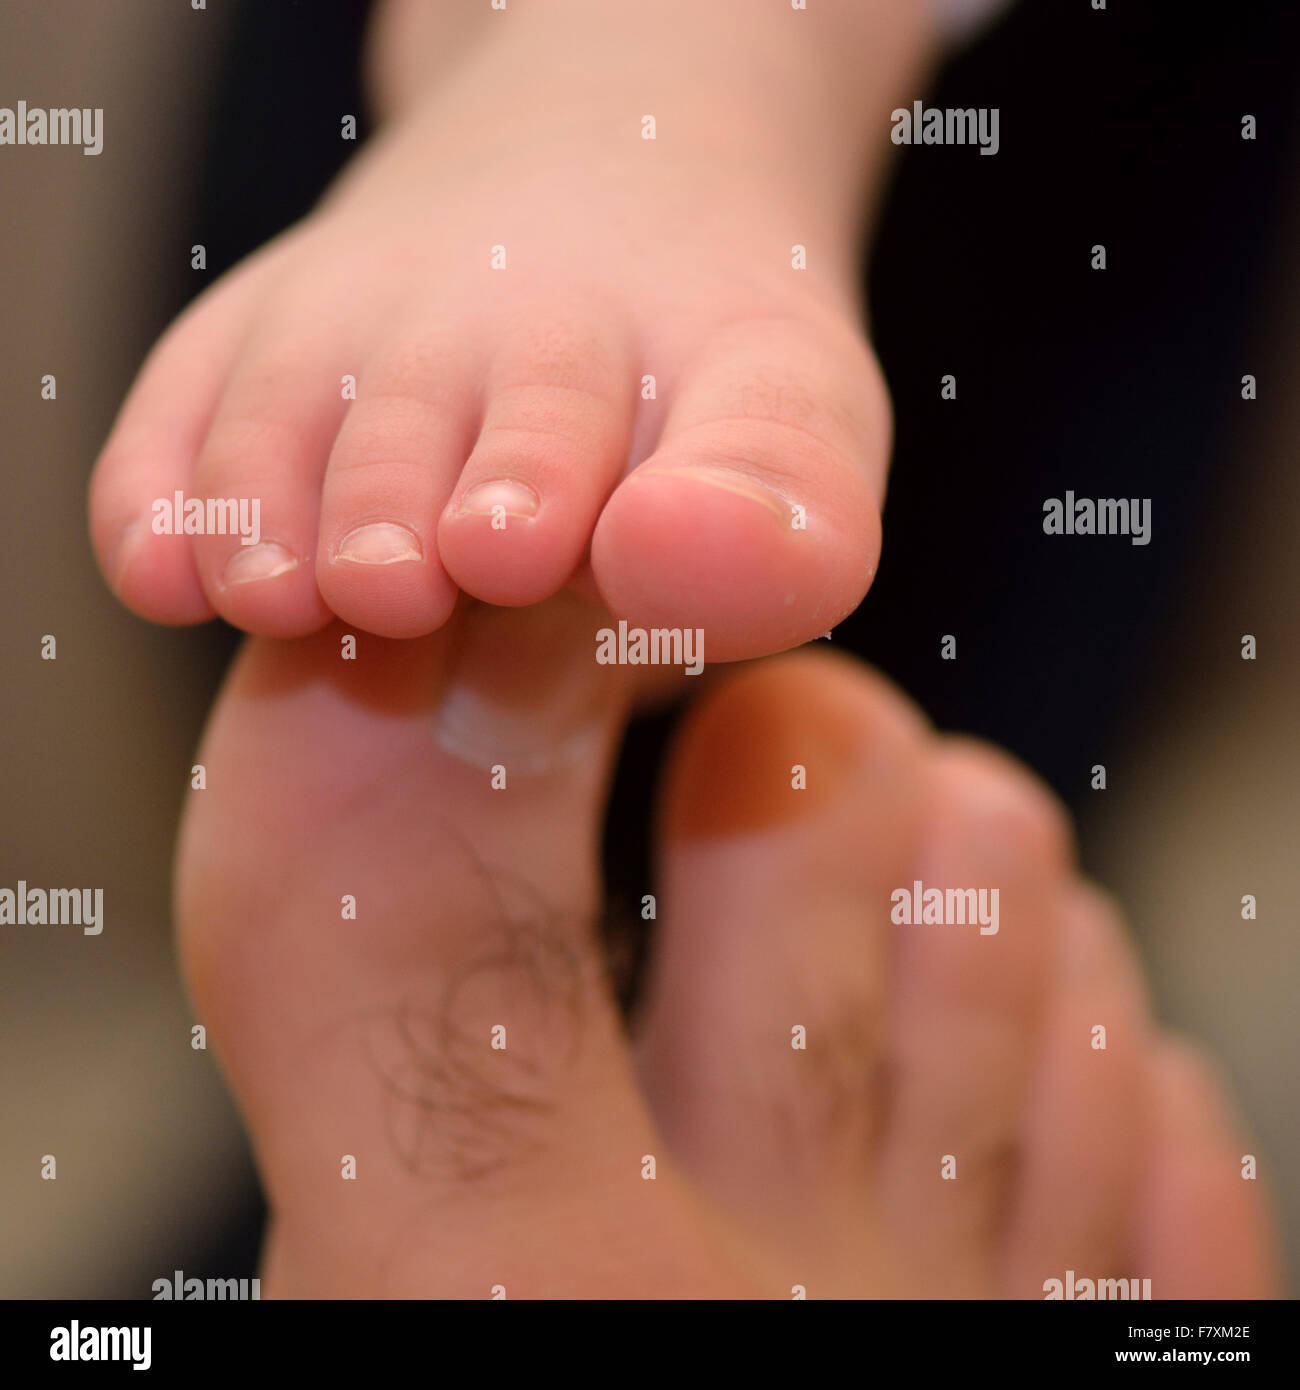 Father and child's feet touching, showing comparison of size - Stock Image